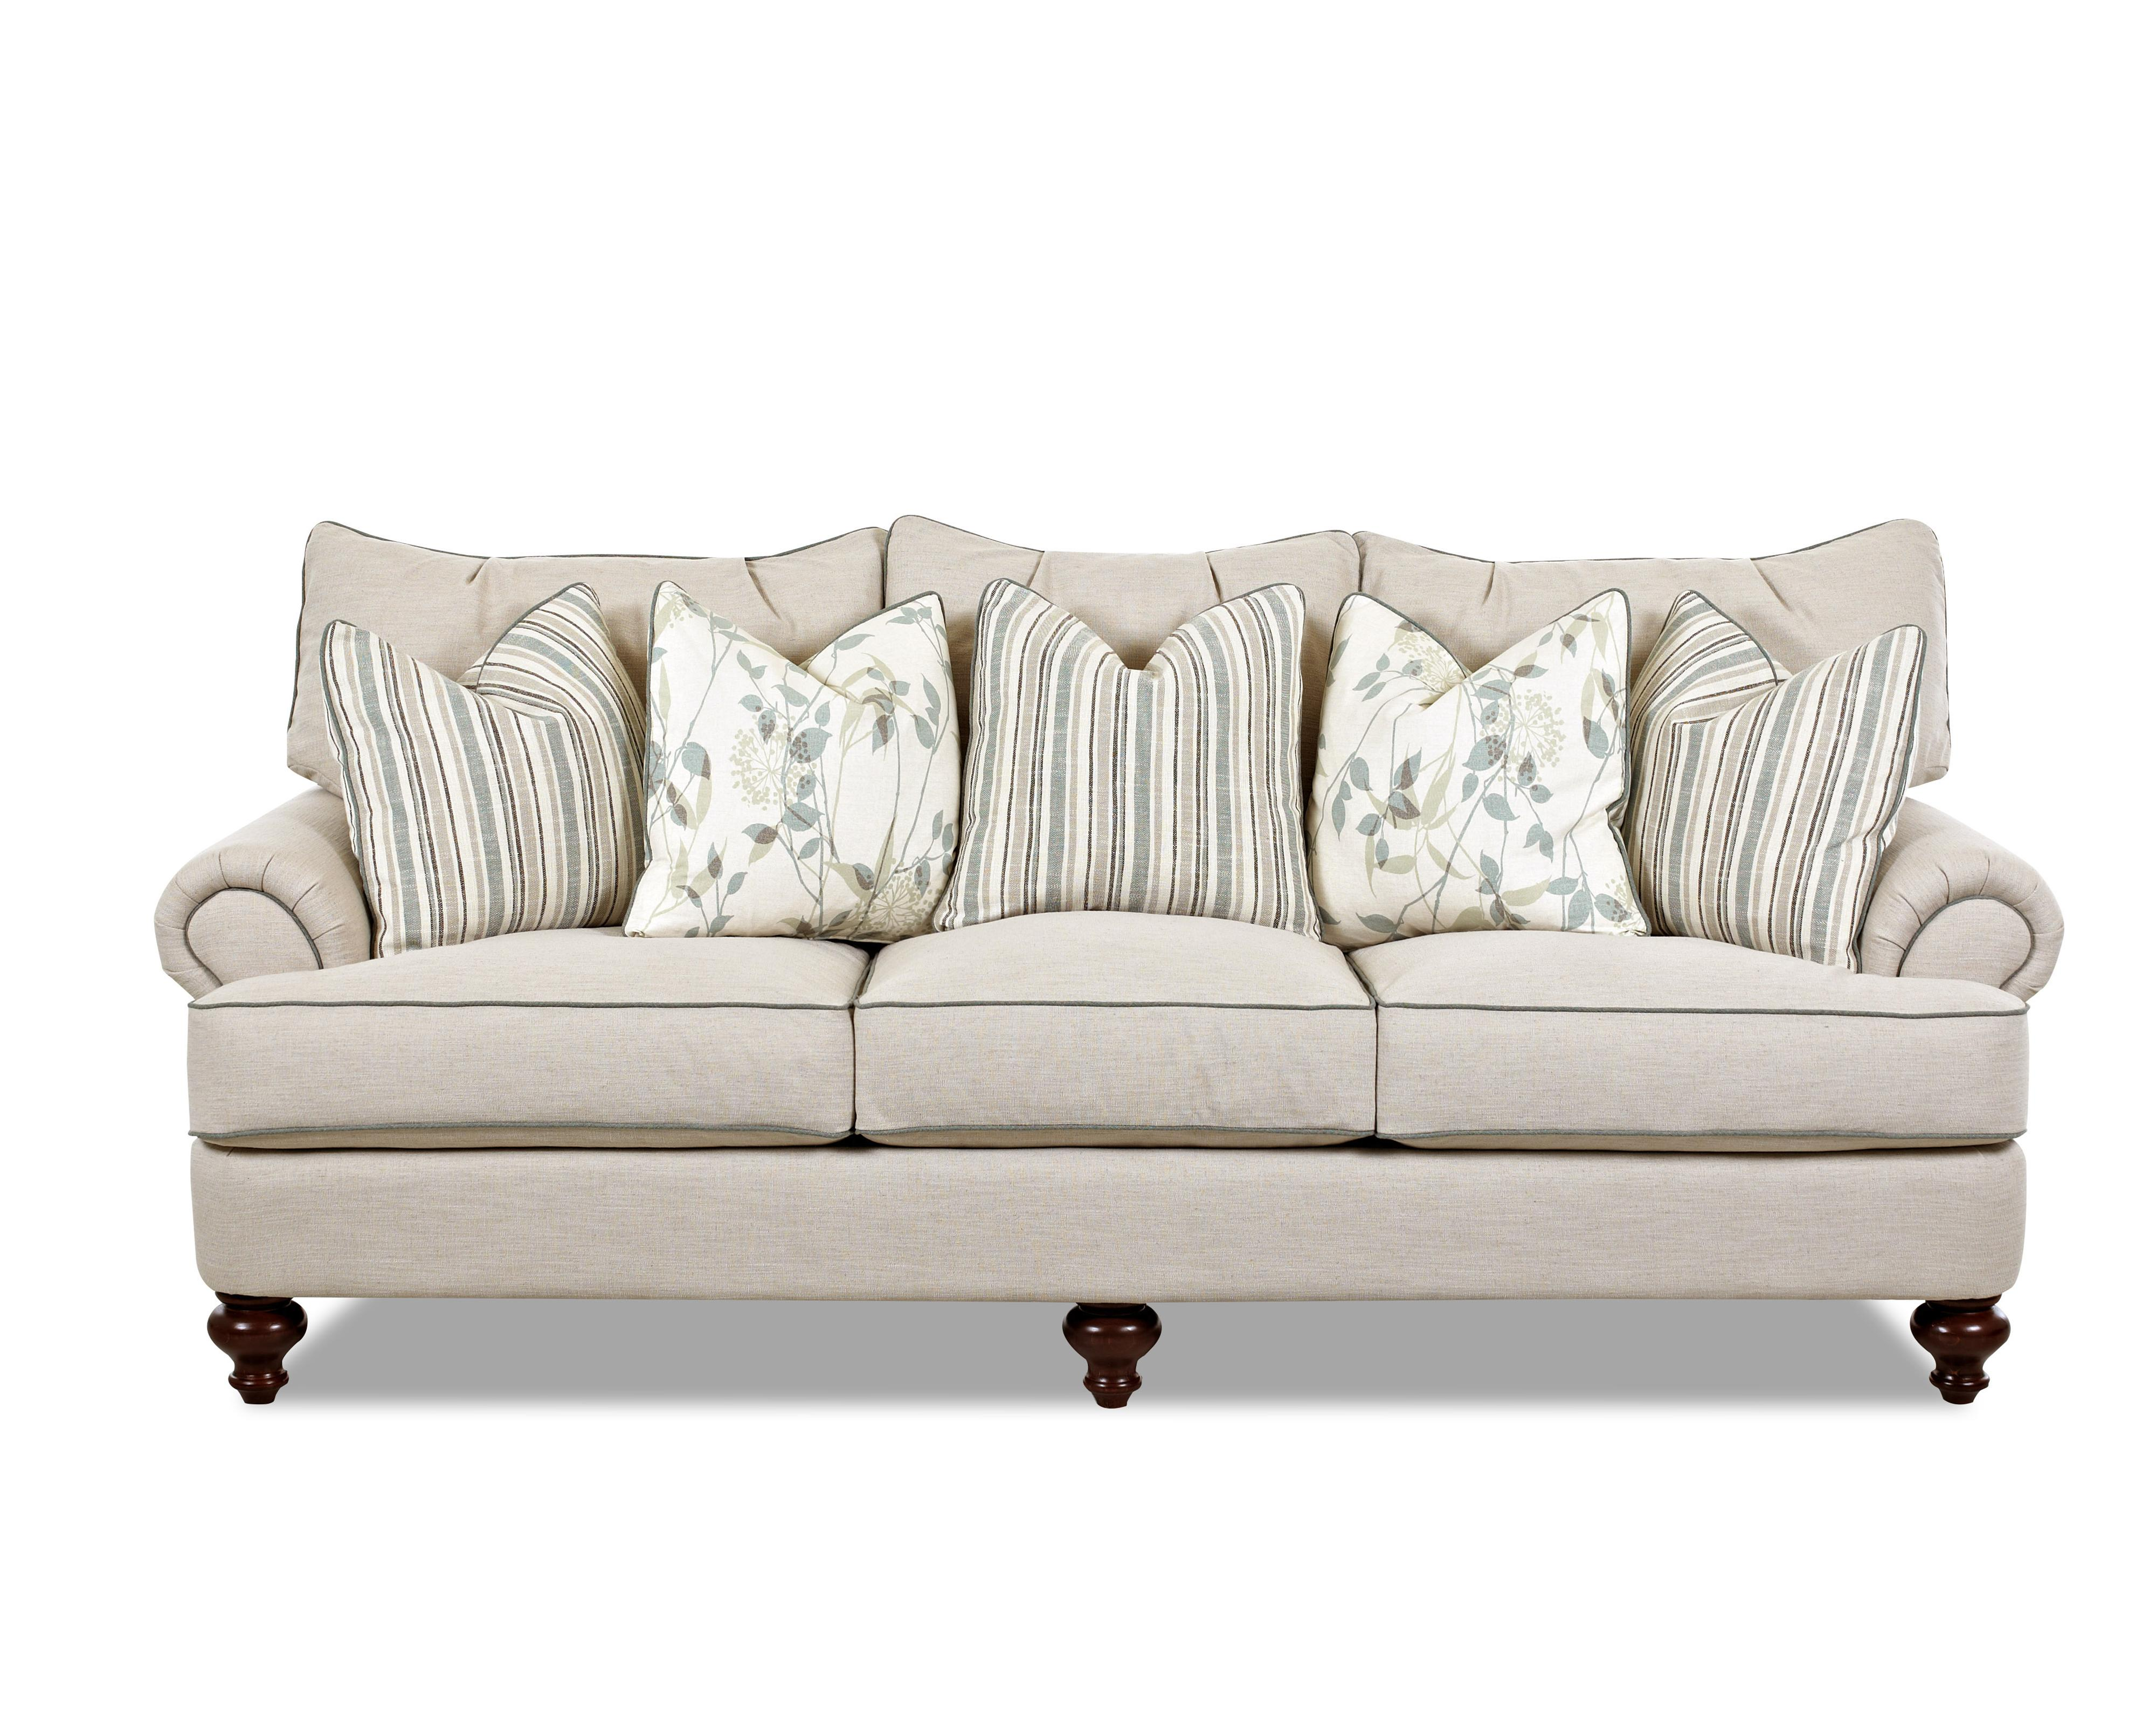 Traditional Upholstered Sofa with T Shaped Down Cushions Rolled